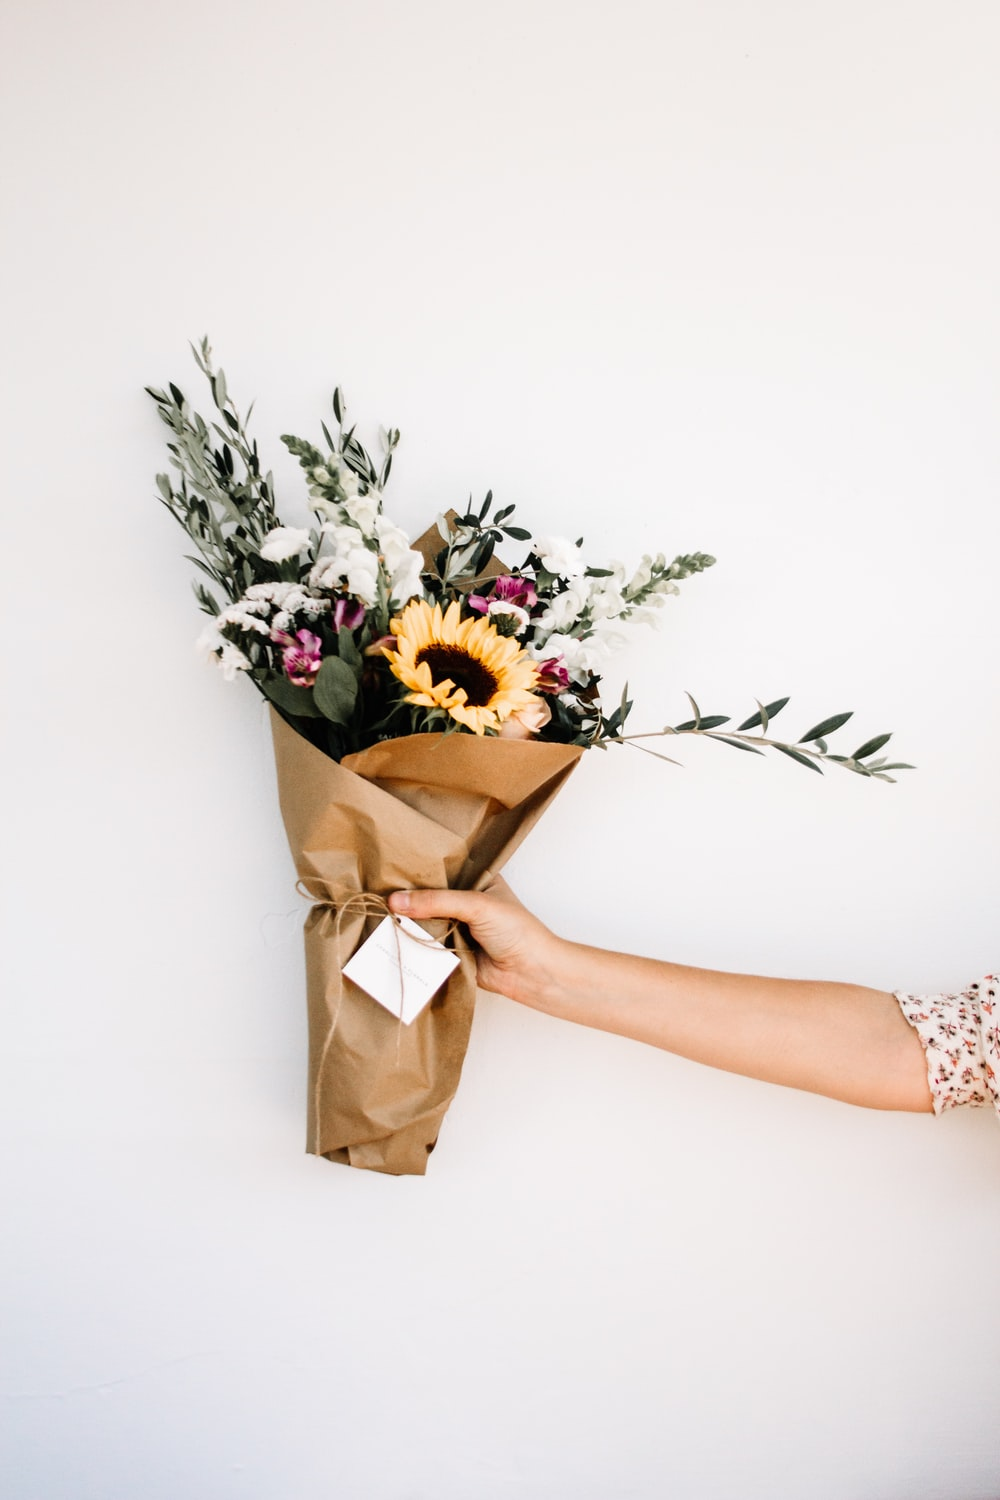 person holding bouquet of flowers